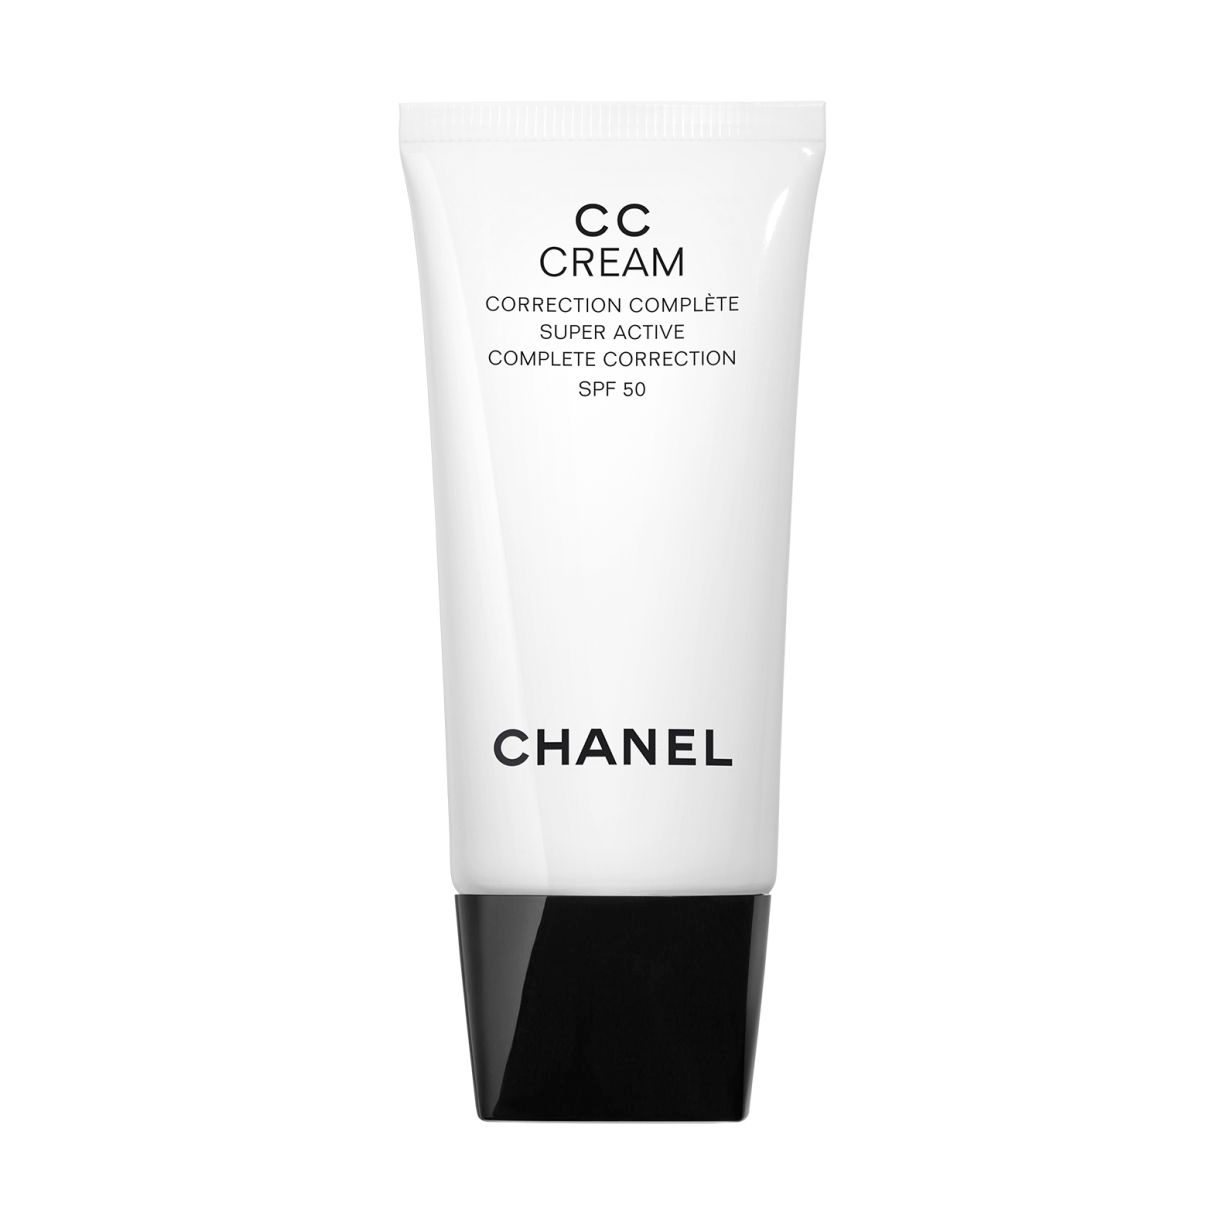 CC CREAM SUPER ACTIVE COMPLETE CORRECTION SPF 50 10 - BEIGE